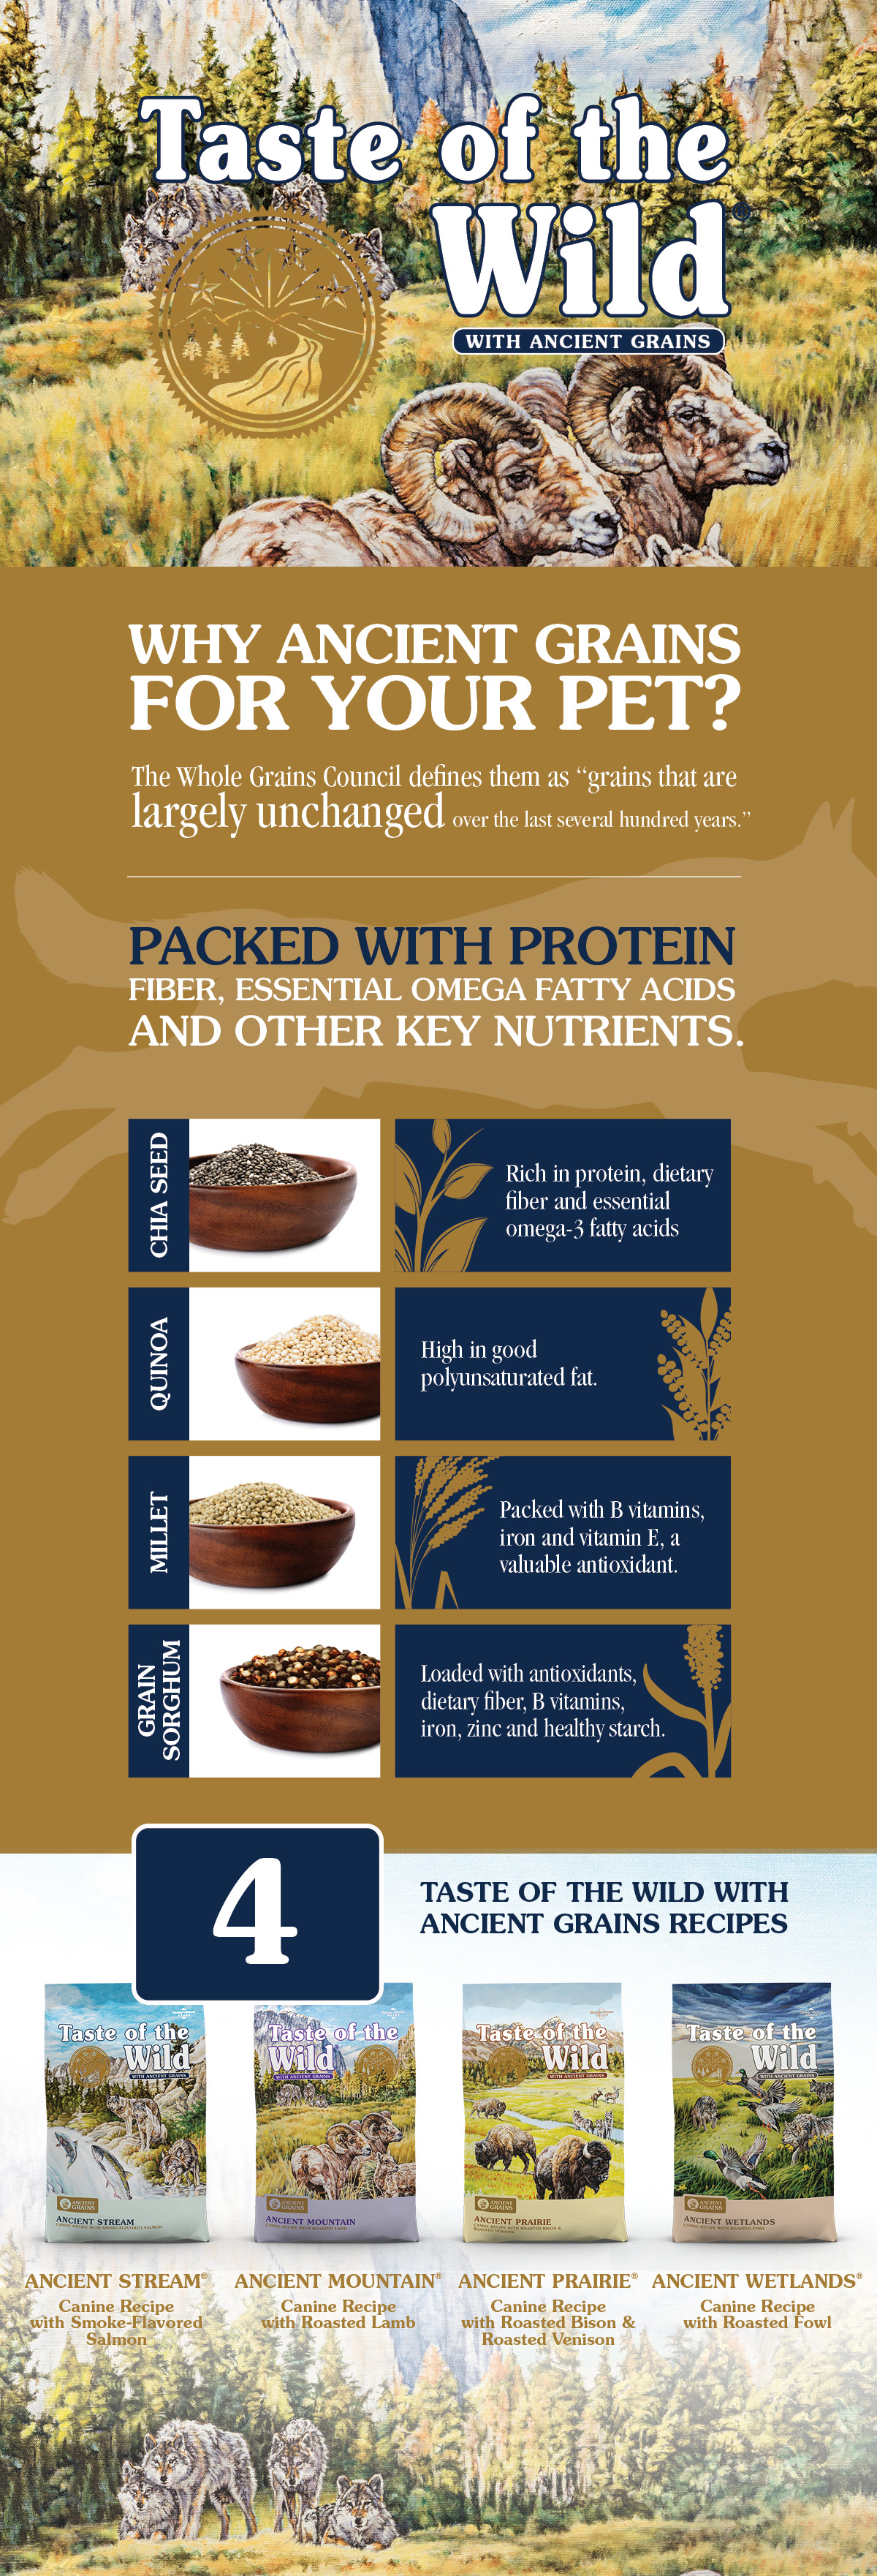 Why Ancient Grains for Your Pet Infographic